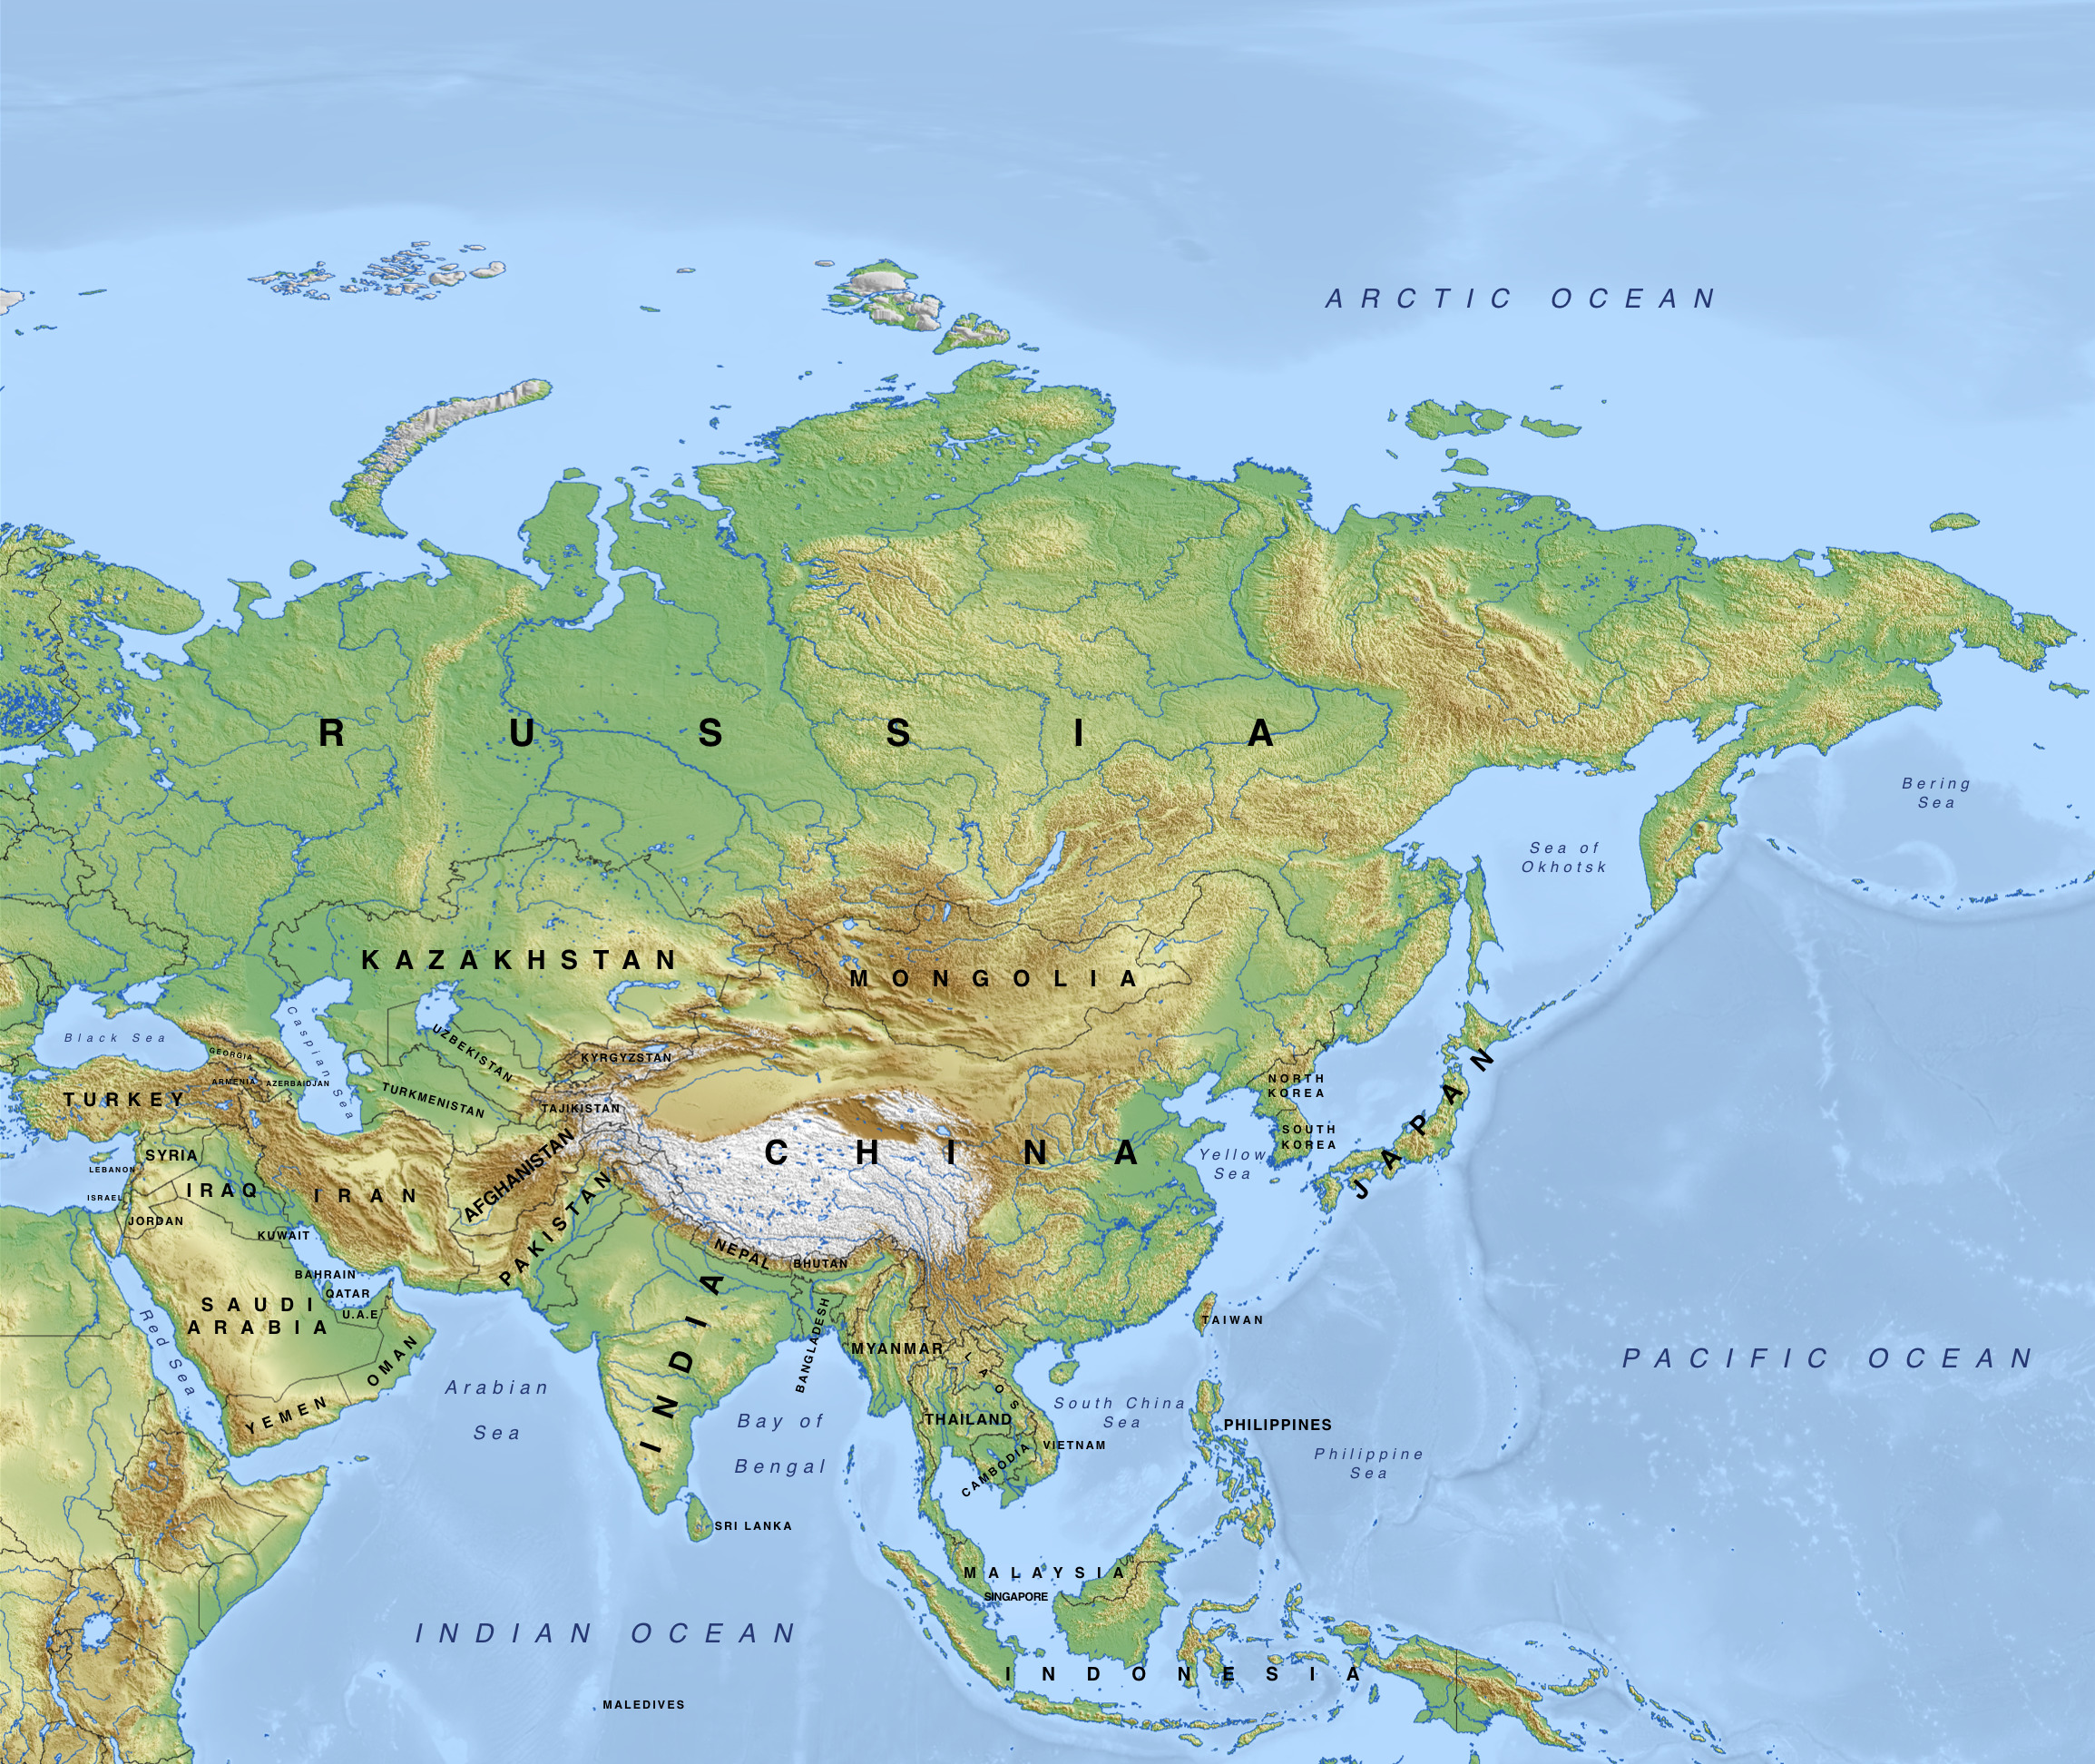 Newsela - Asia: Physical geography